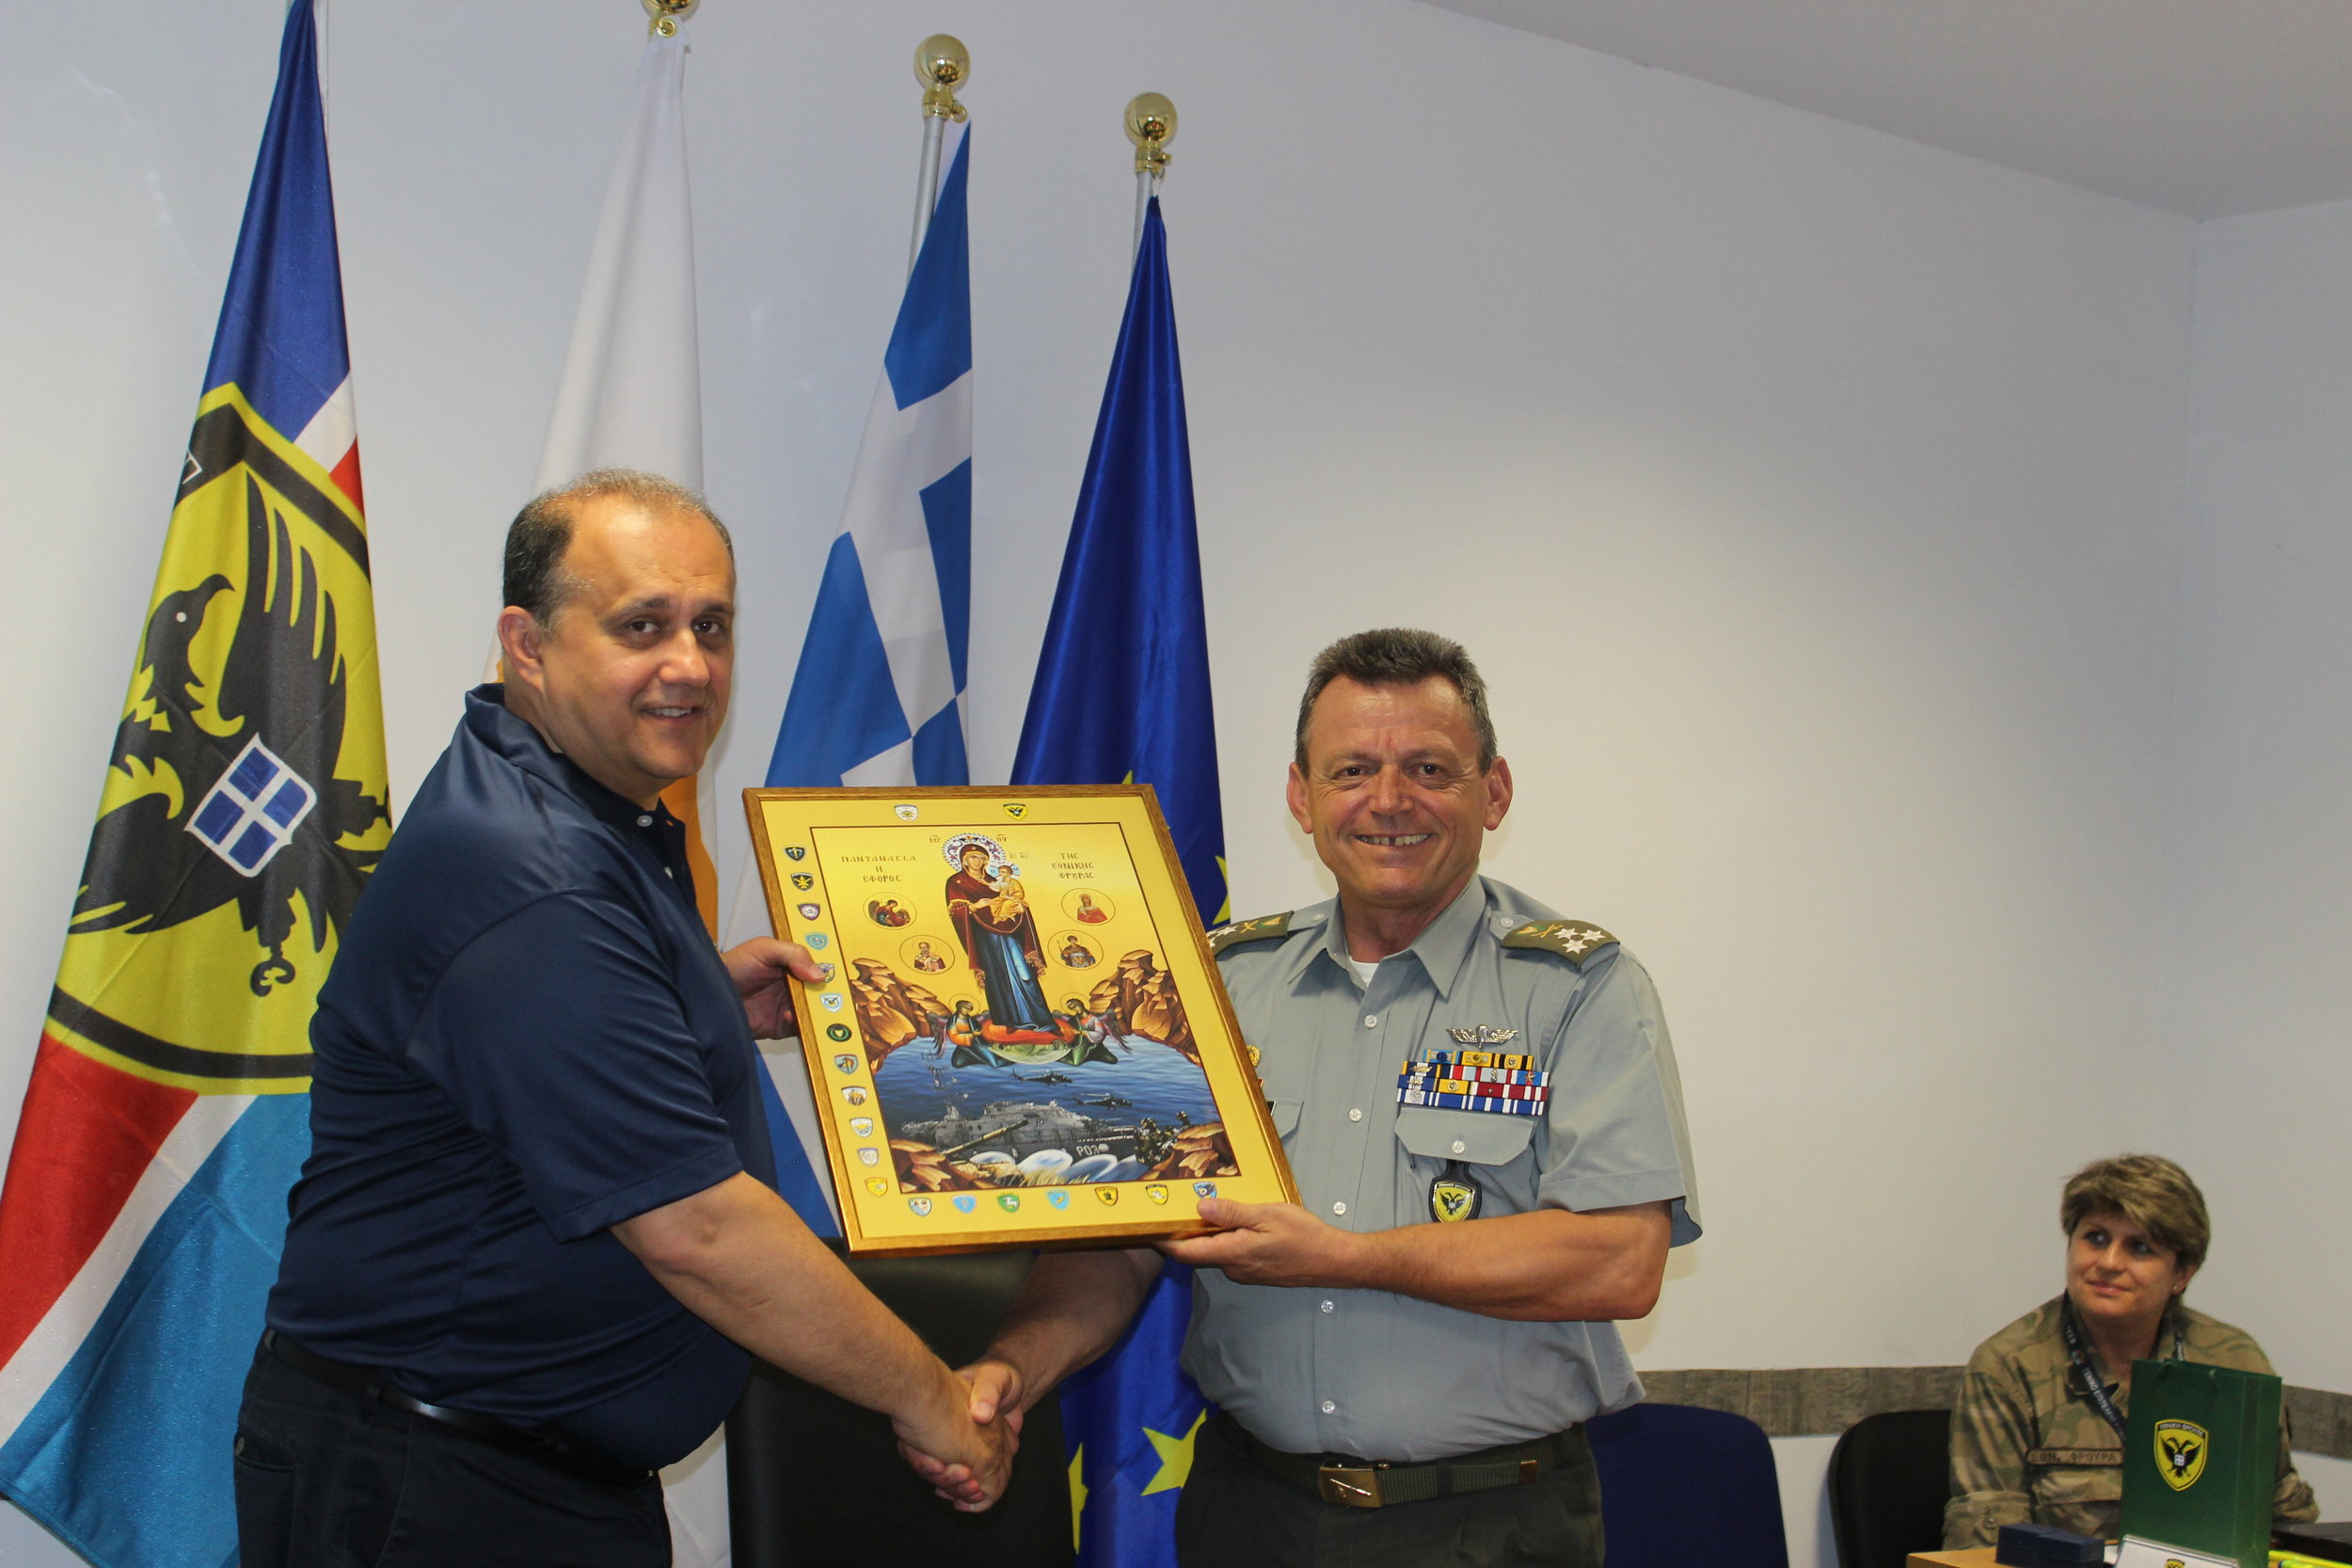 Lt. General Leontaris presents Nick Larigakis with an icon.